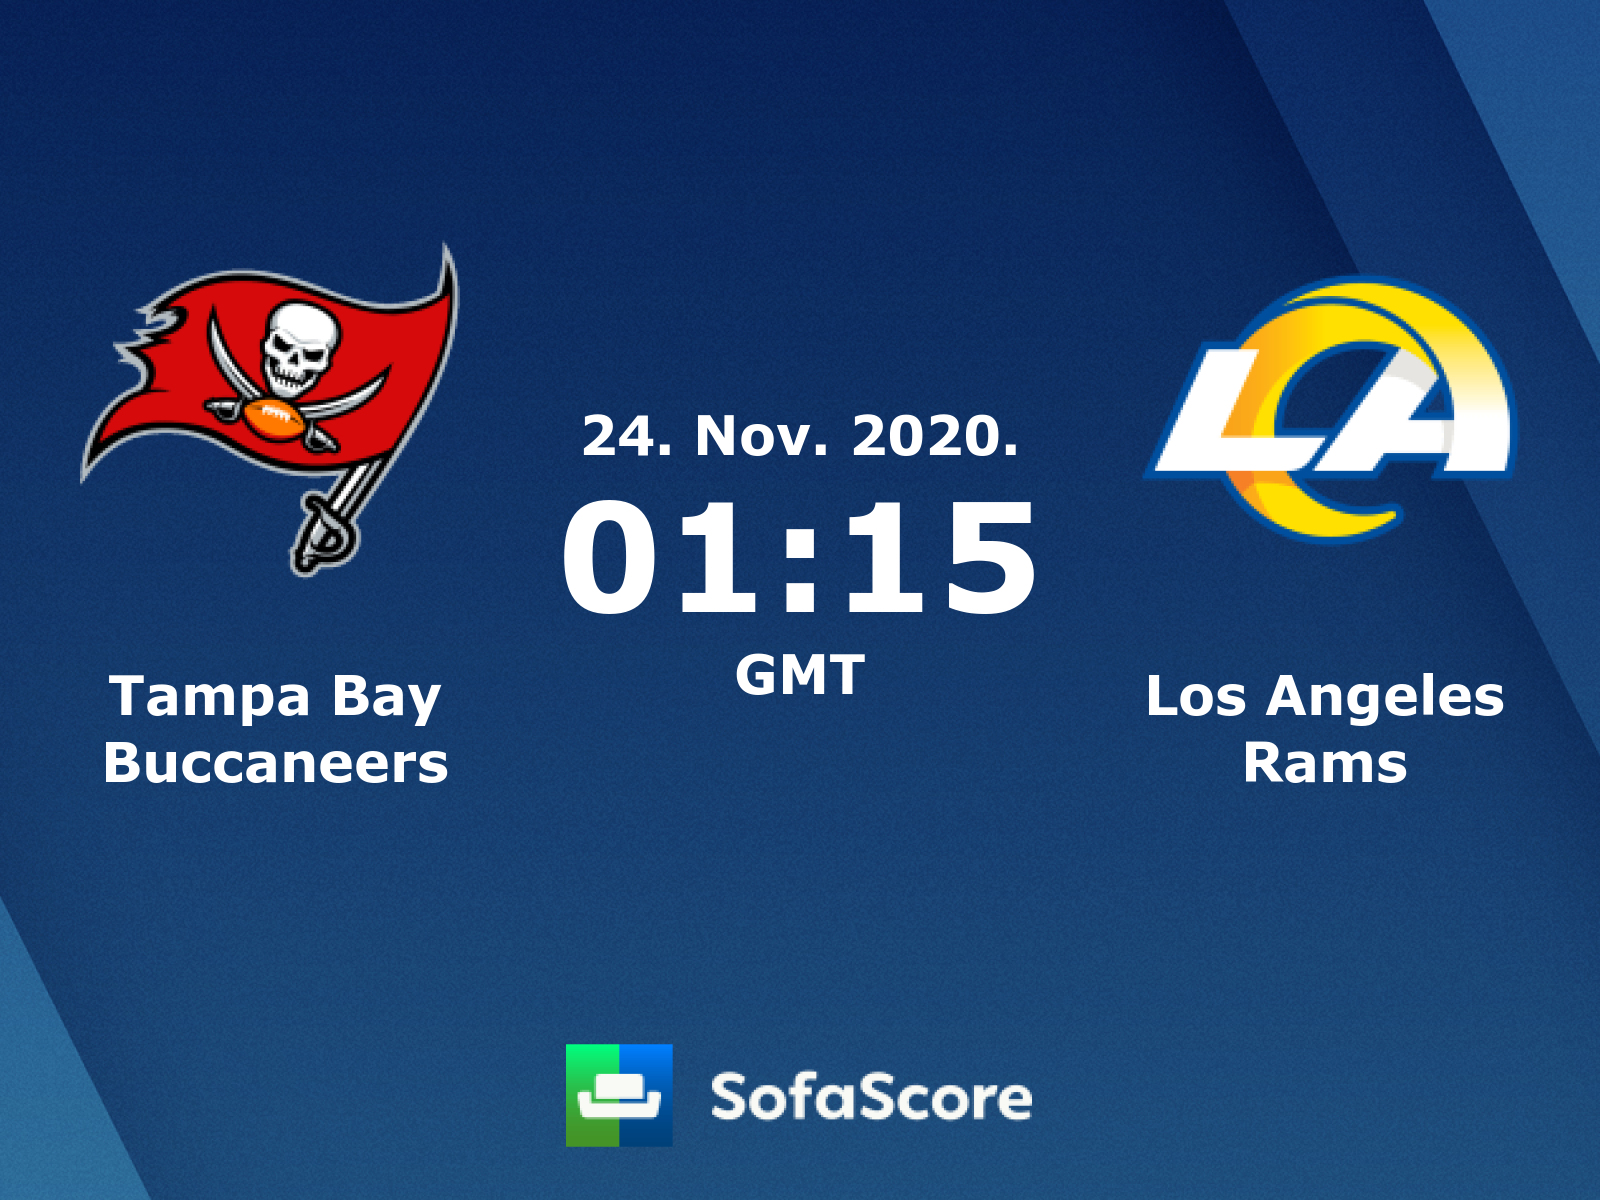 tampa bay buccaneers los angeles rams live score video stream and h2h results sofascore tampa bay buccaneers los angeles rams